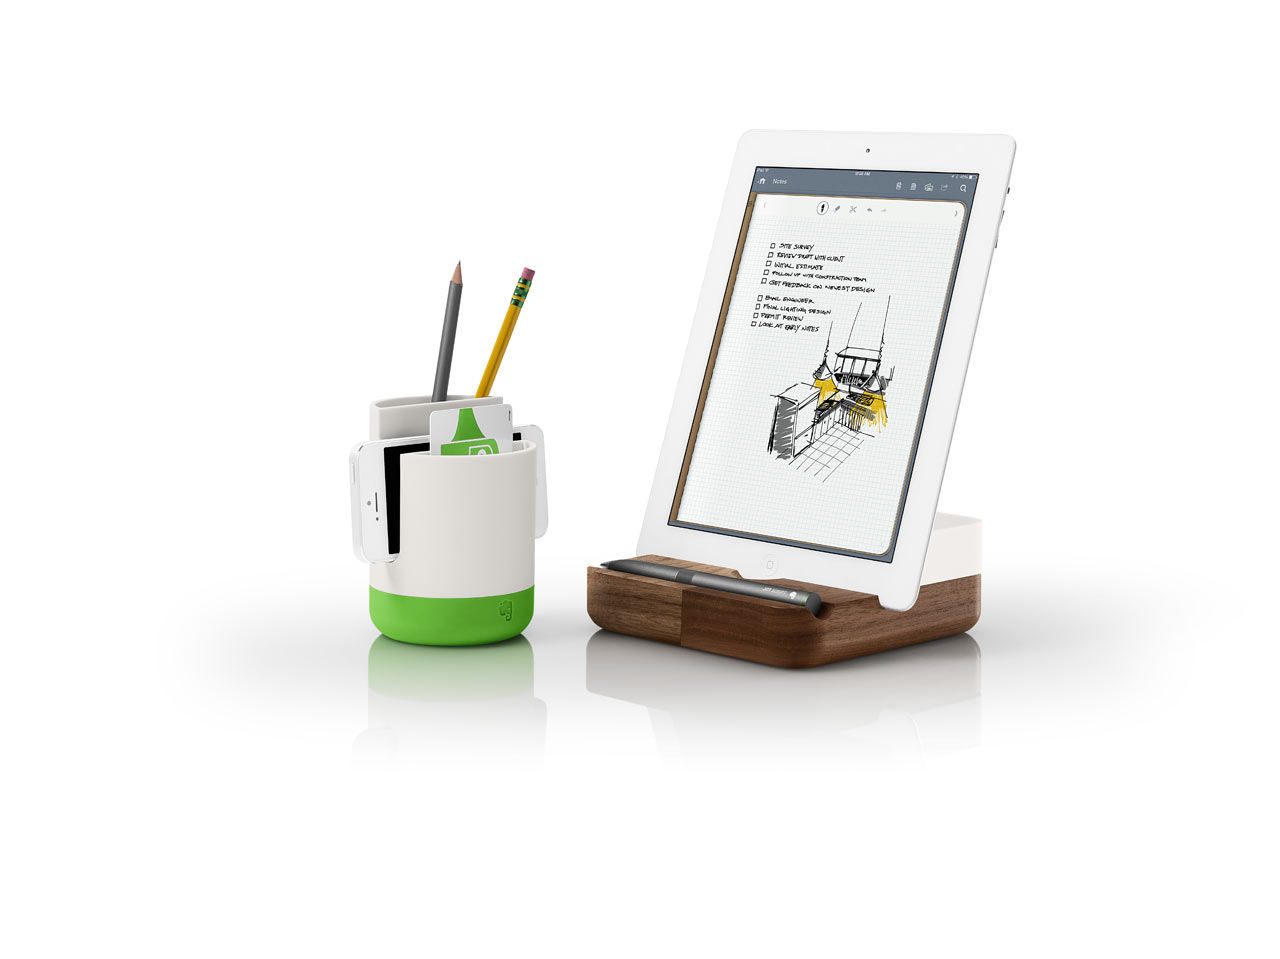 Pfeiffer-Collection-Evernote-Eric-Pfeiffer-3